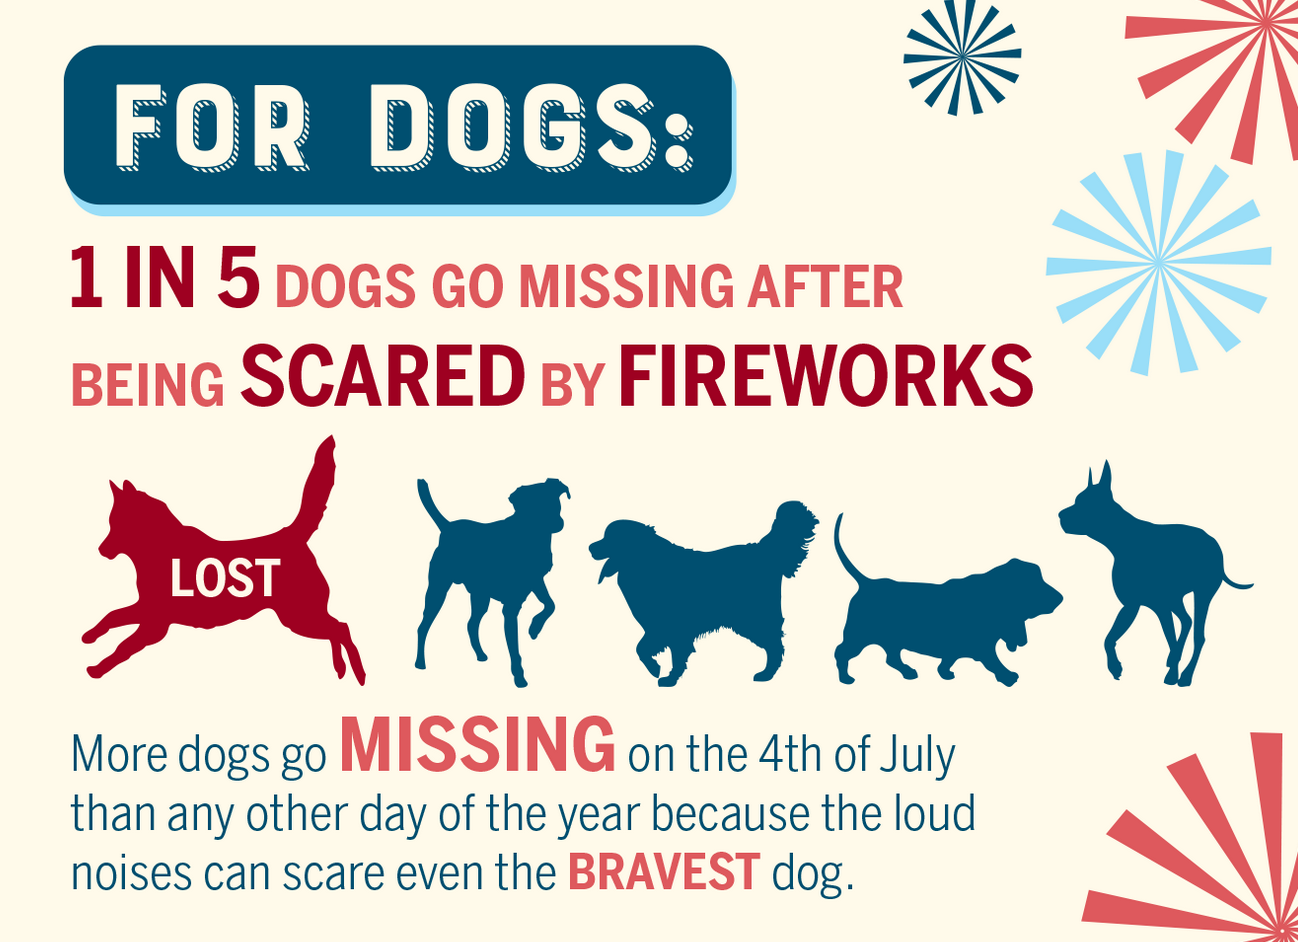 1 in 5 dogs go missing after being scared by fireworks. This is a small graphic explaining this.